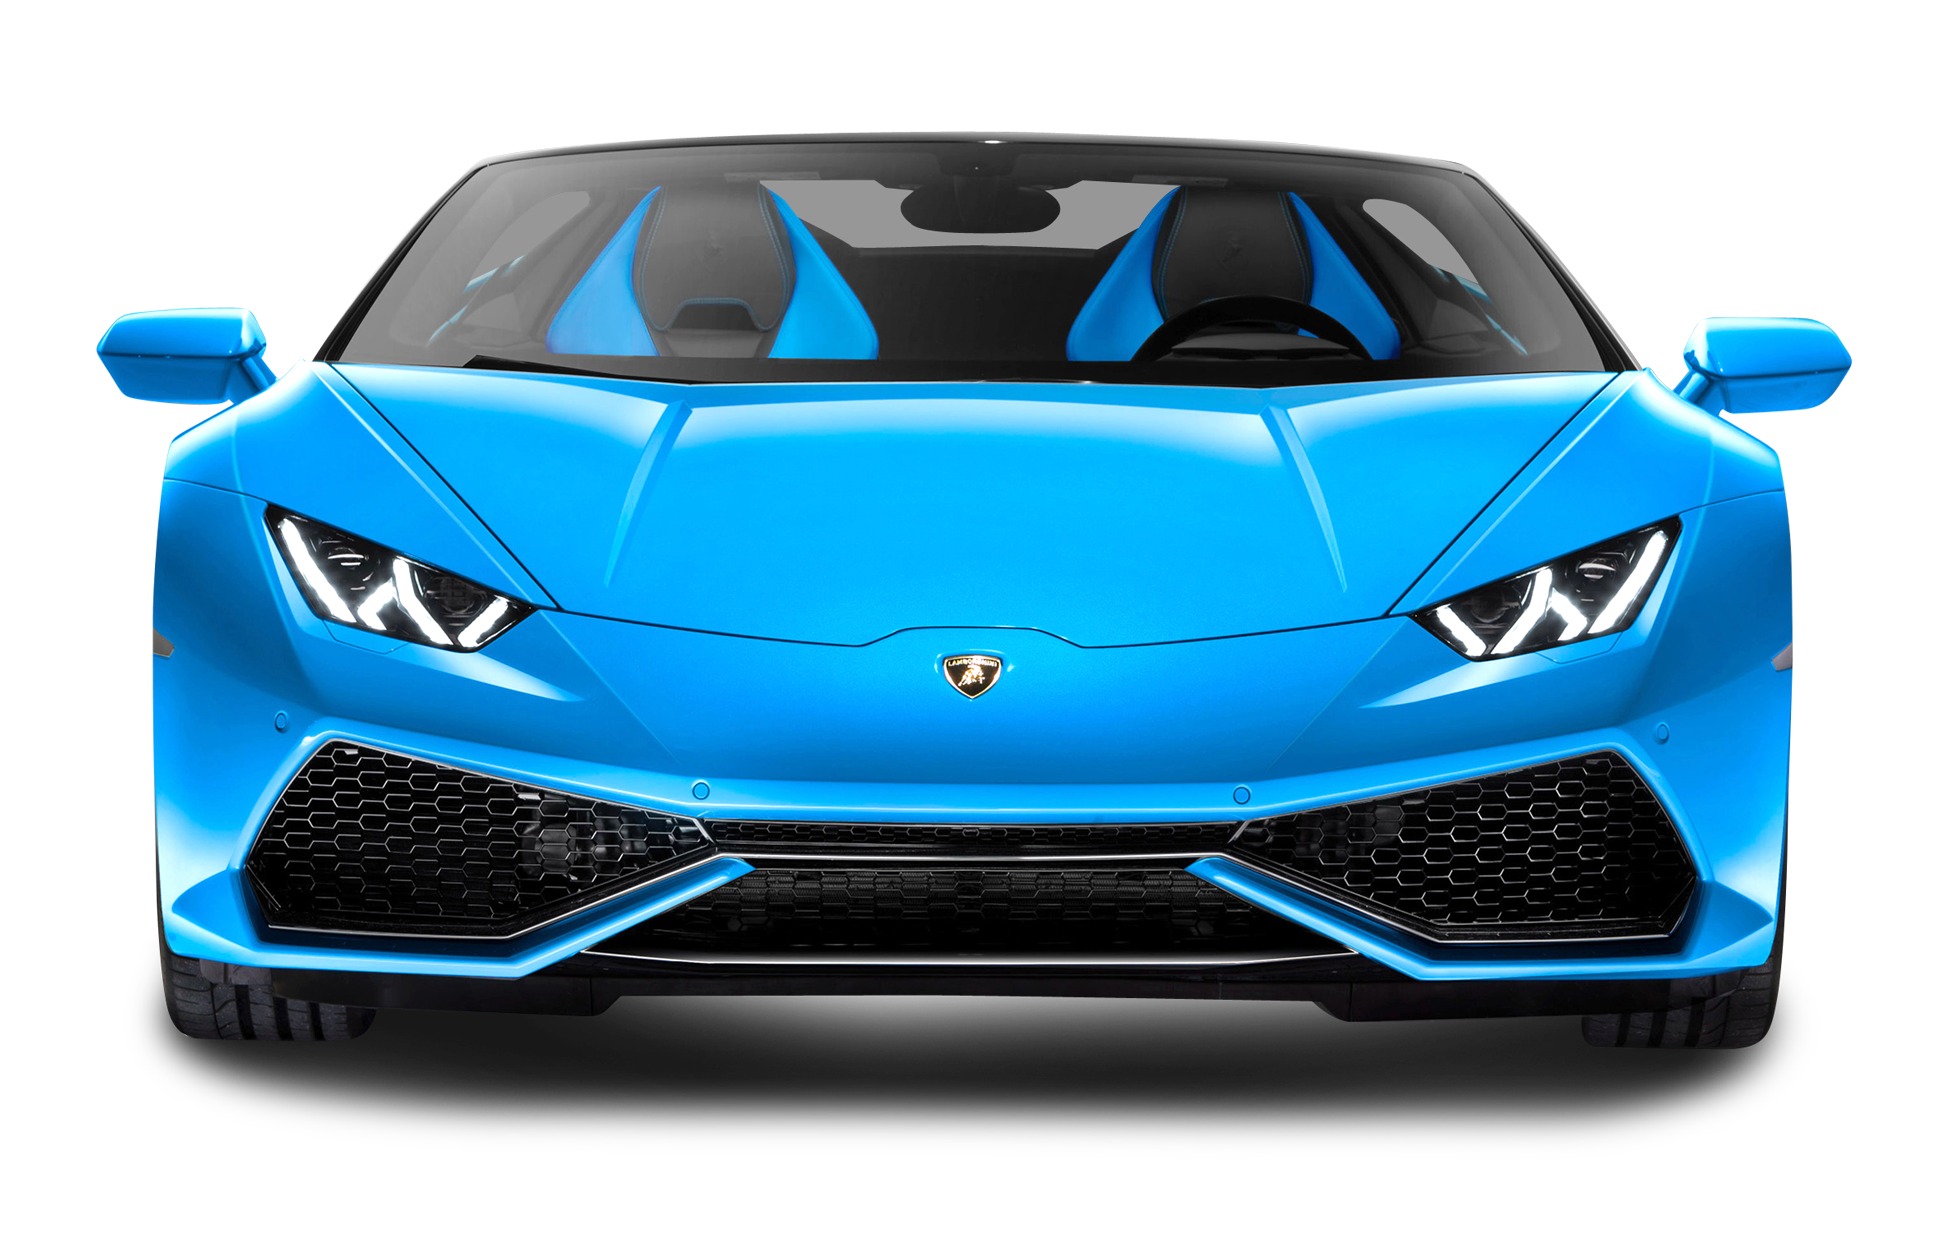 Car front view clipart vector Blue Lamborghini Huracan LP 610 4 Spyder Front View Car PNG Image ... vector